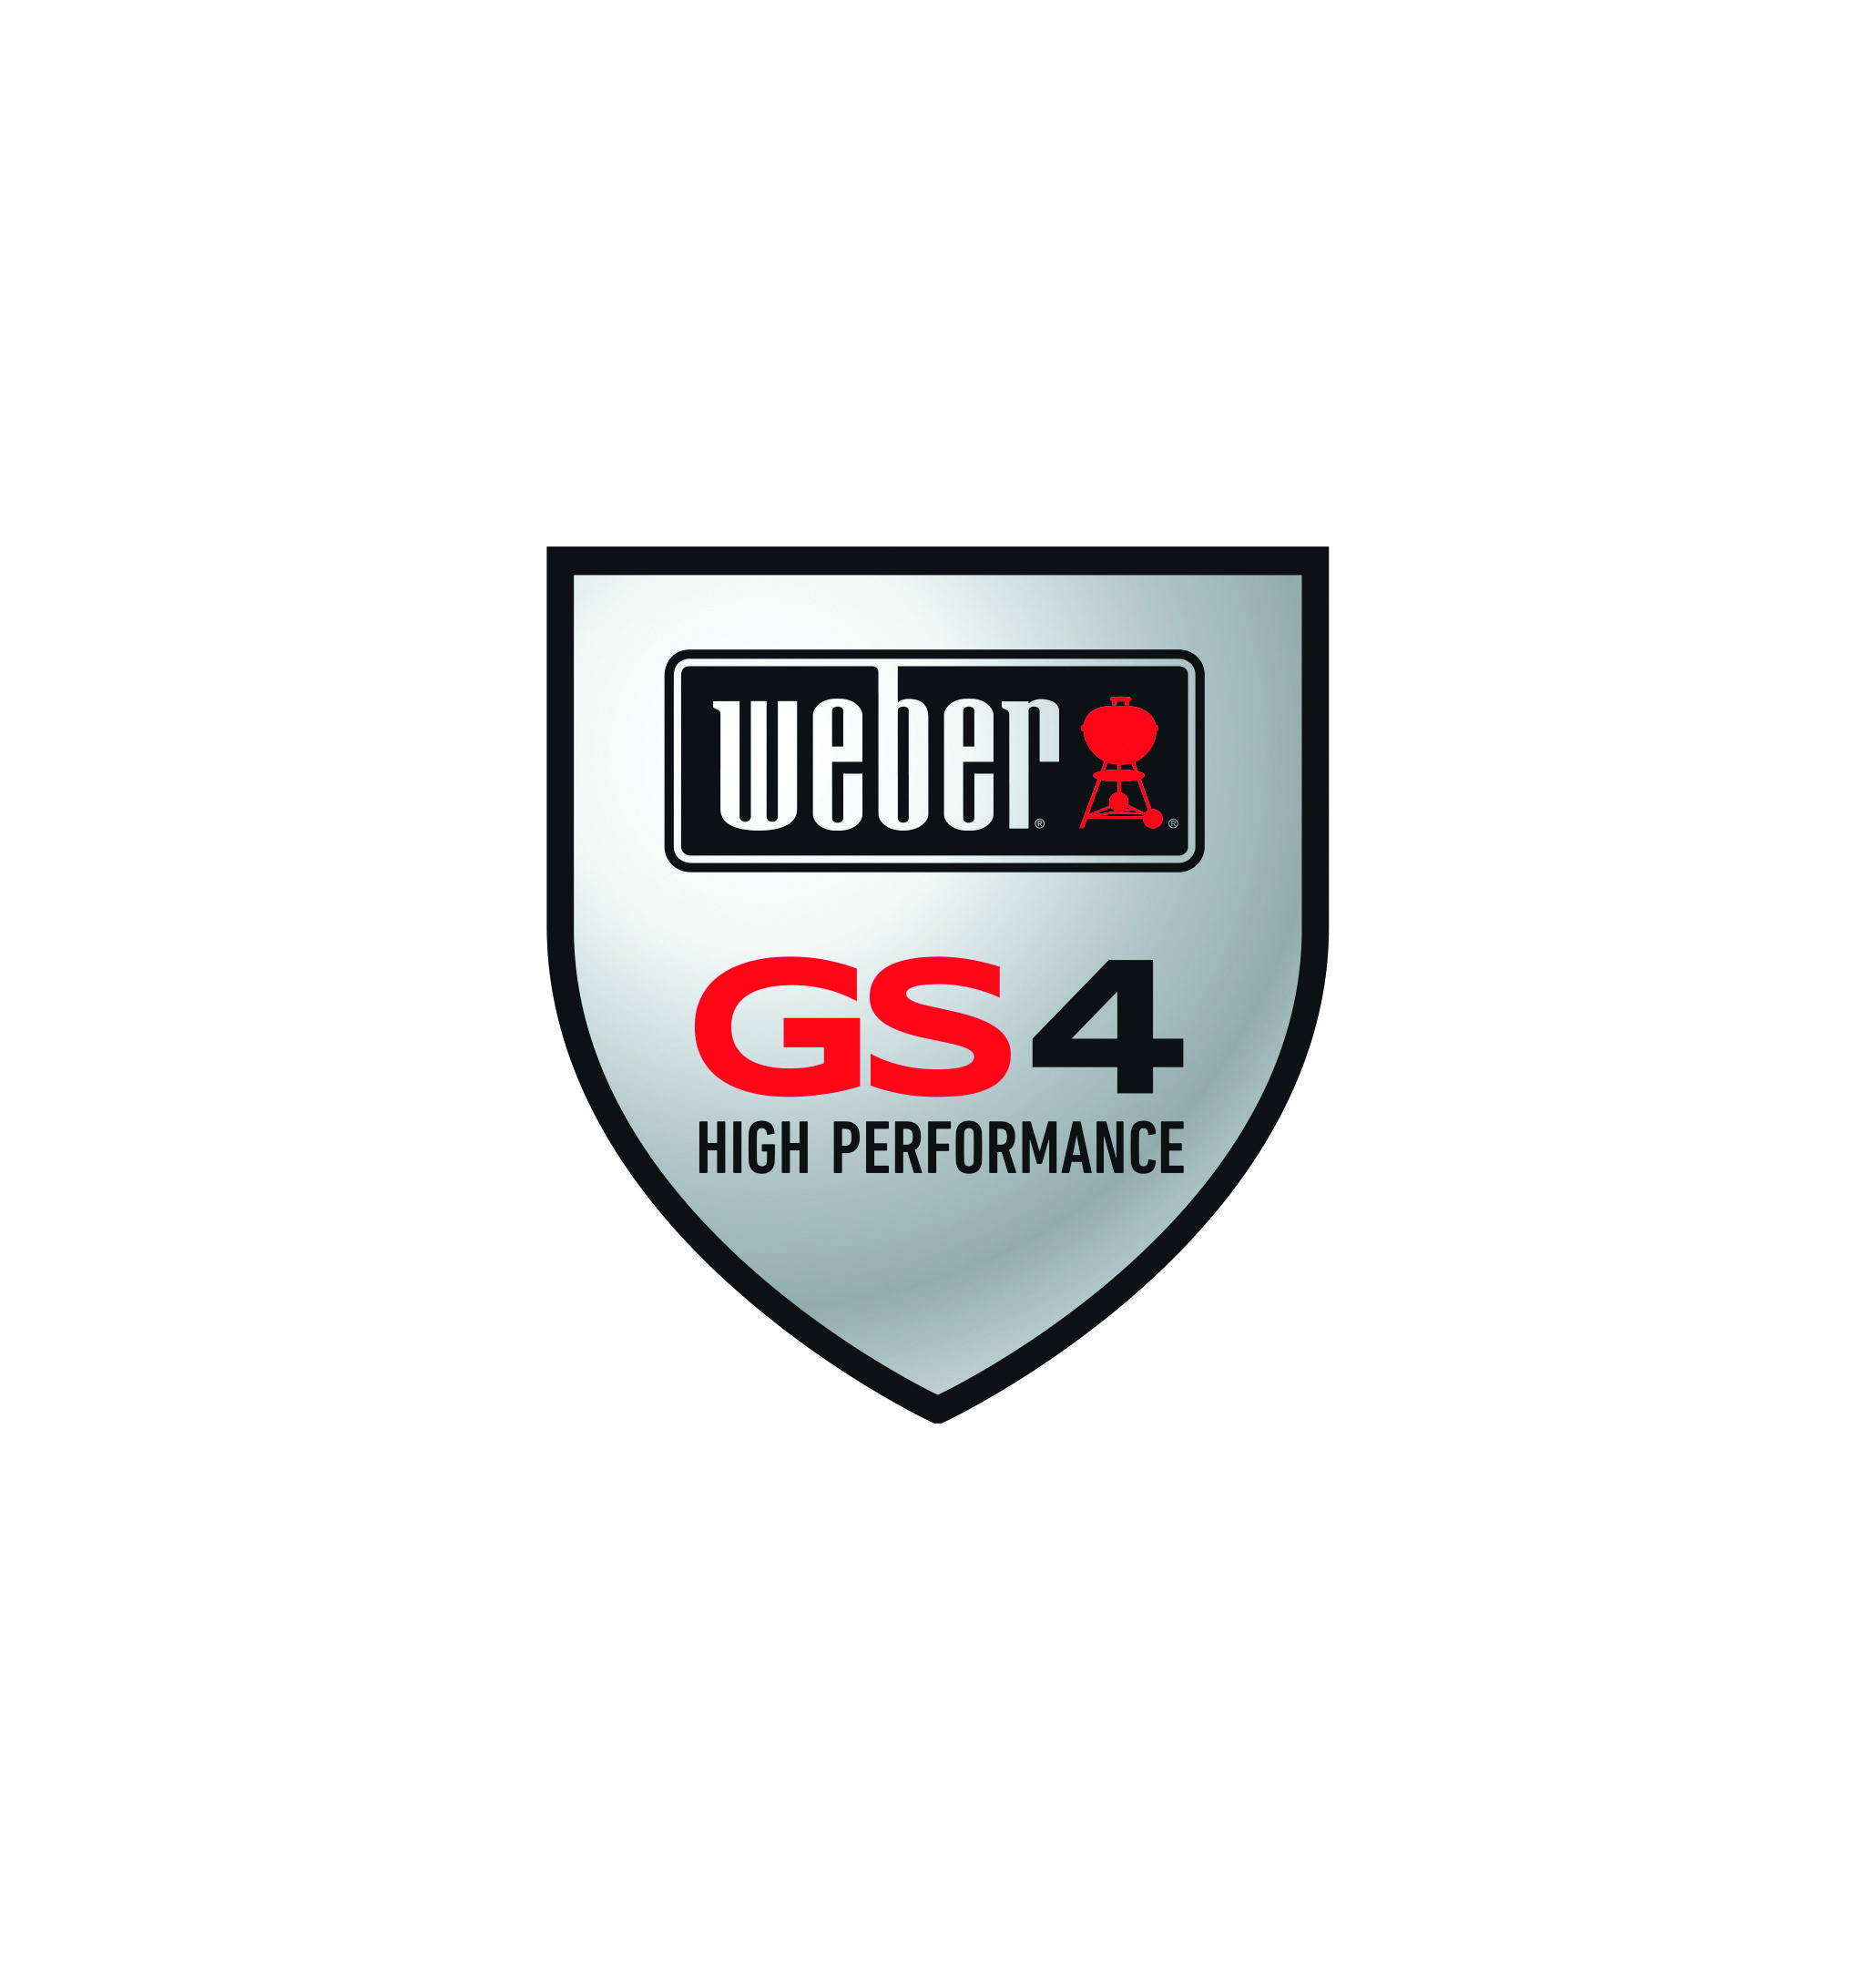 Weber GS4 High Performance